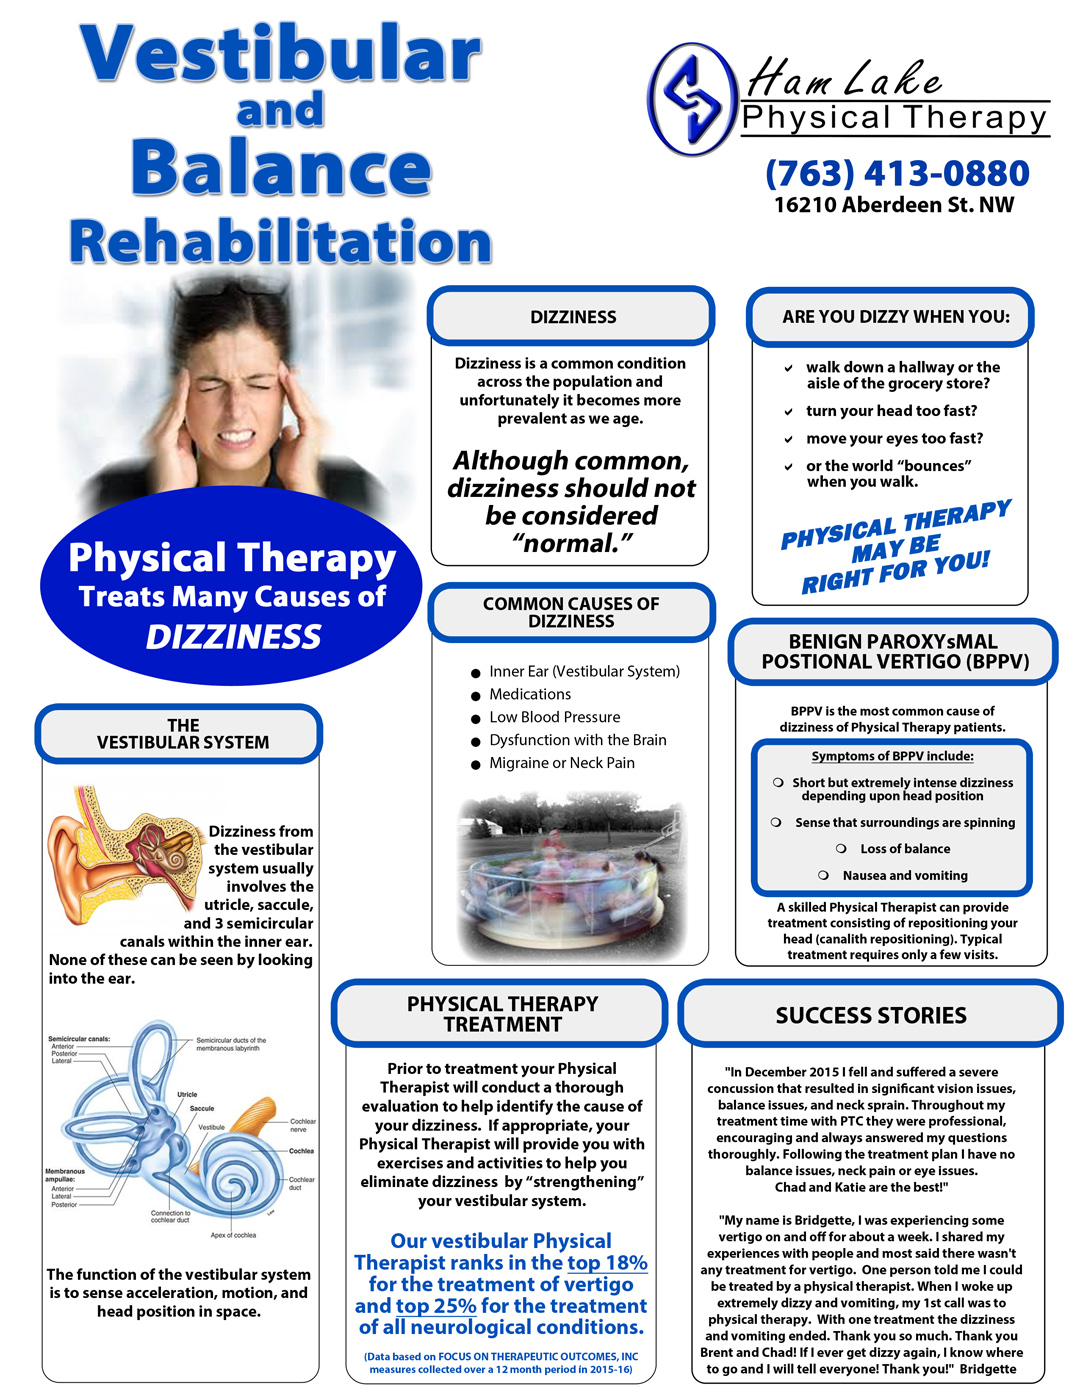 Vestibular Physical Therapy Physical Therapy Consultants Inc